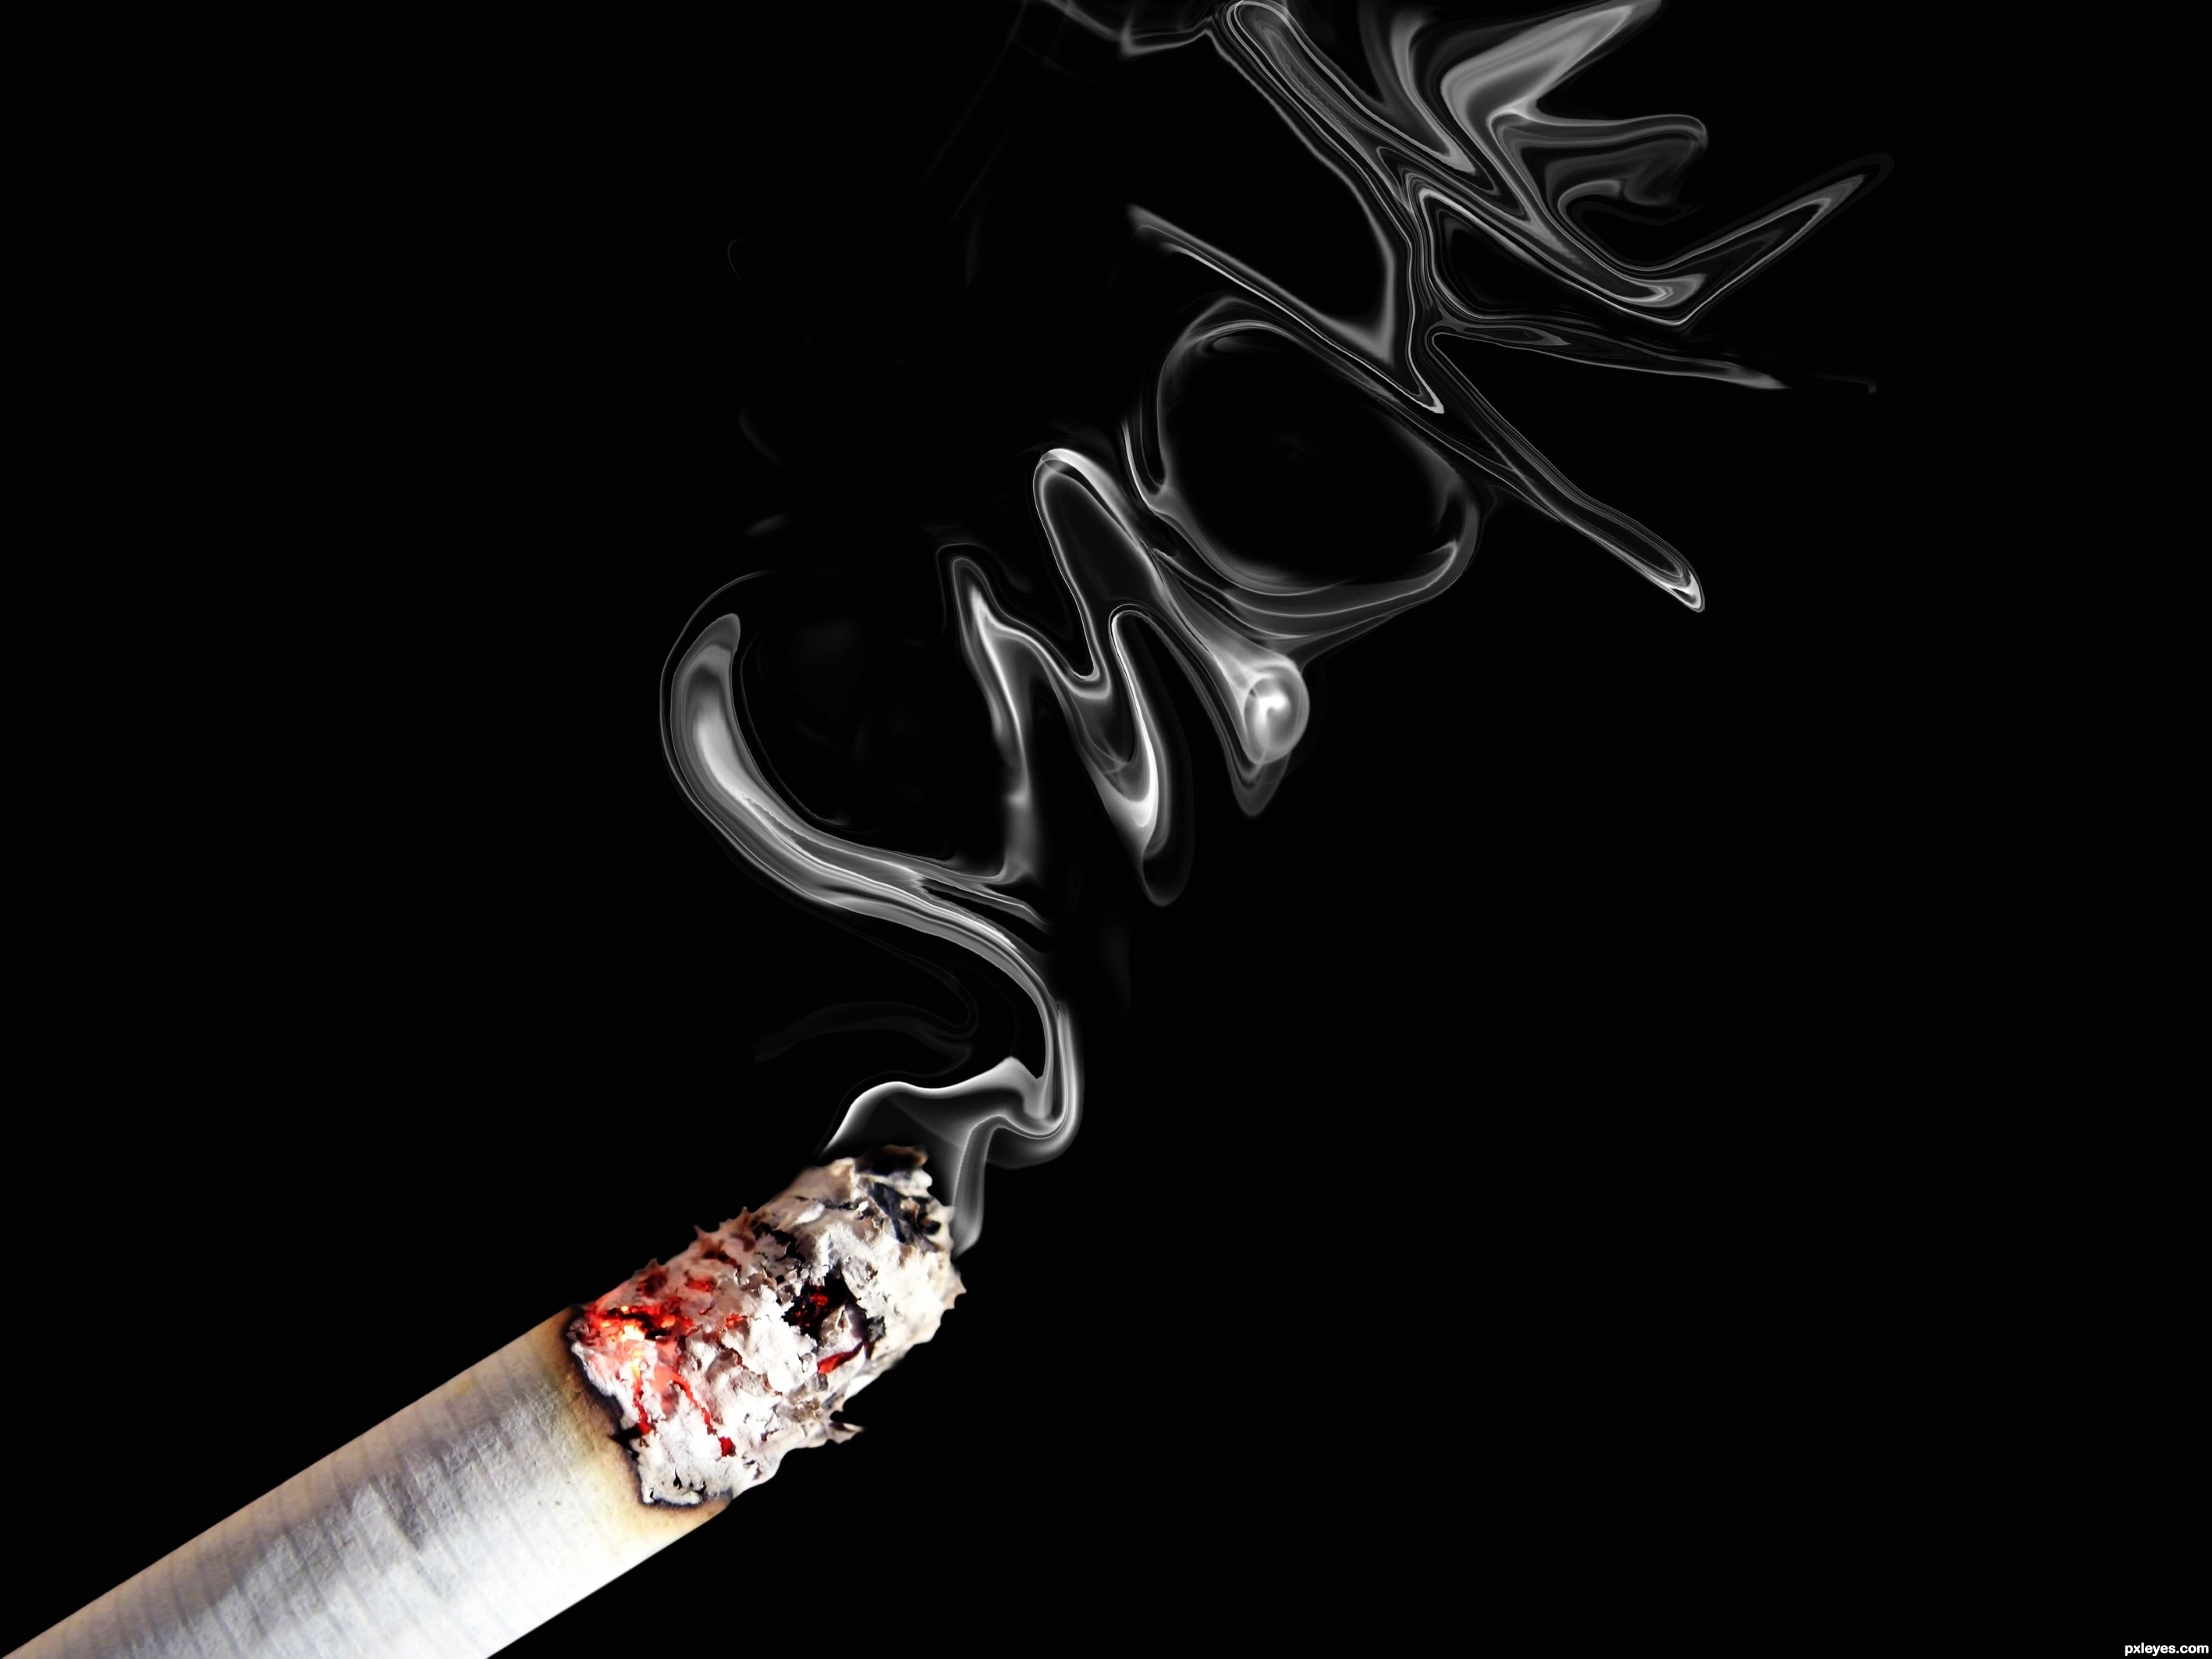 Cigarette Smoke Art | www.pixshark.com - Images Galleries ...